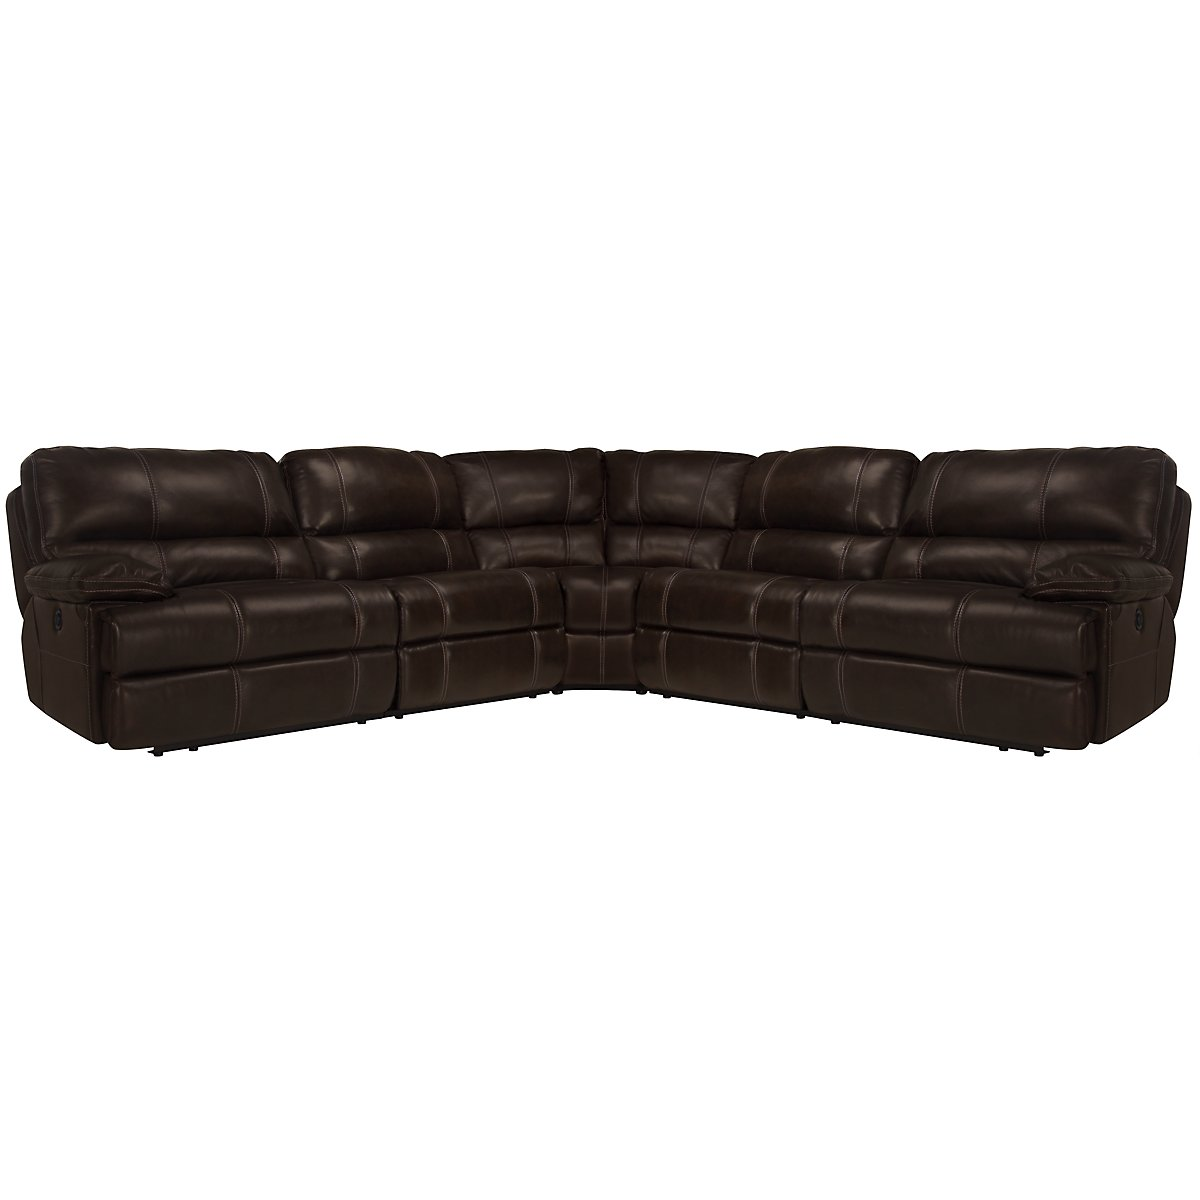 Alton2 Dark Brown Leather & Vinyl Small Two-Arm Manually Reclining Sectional